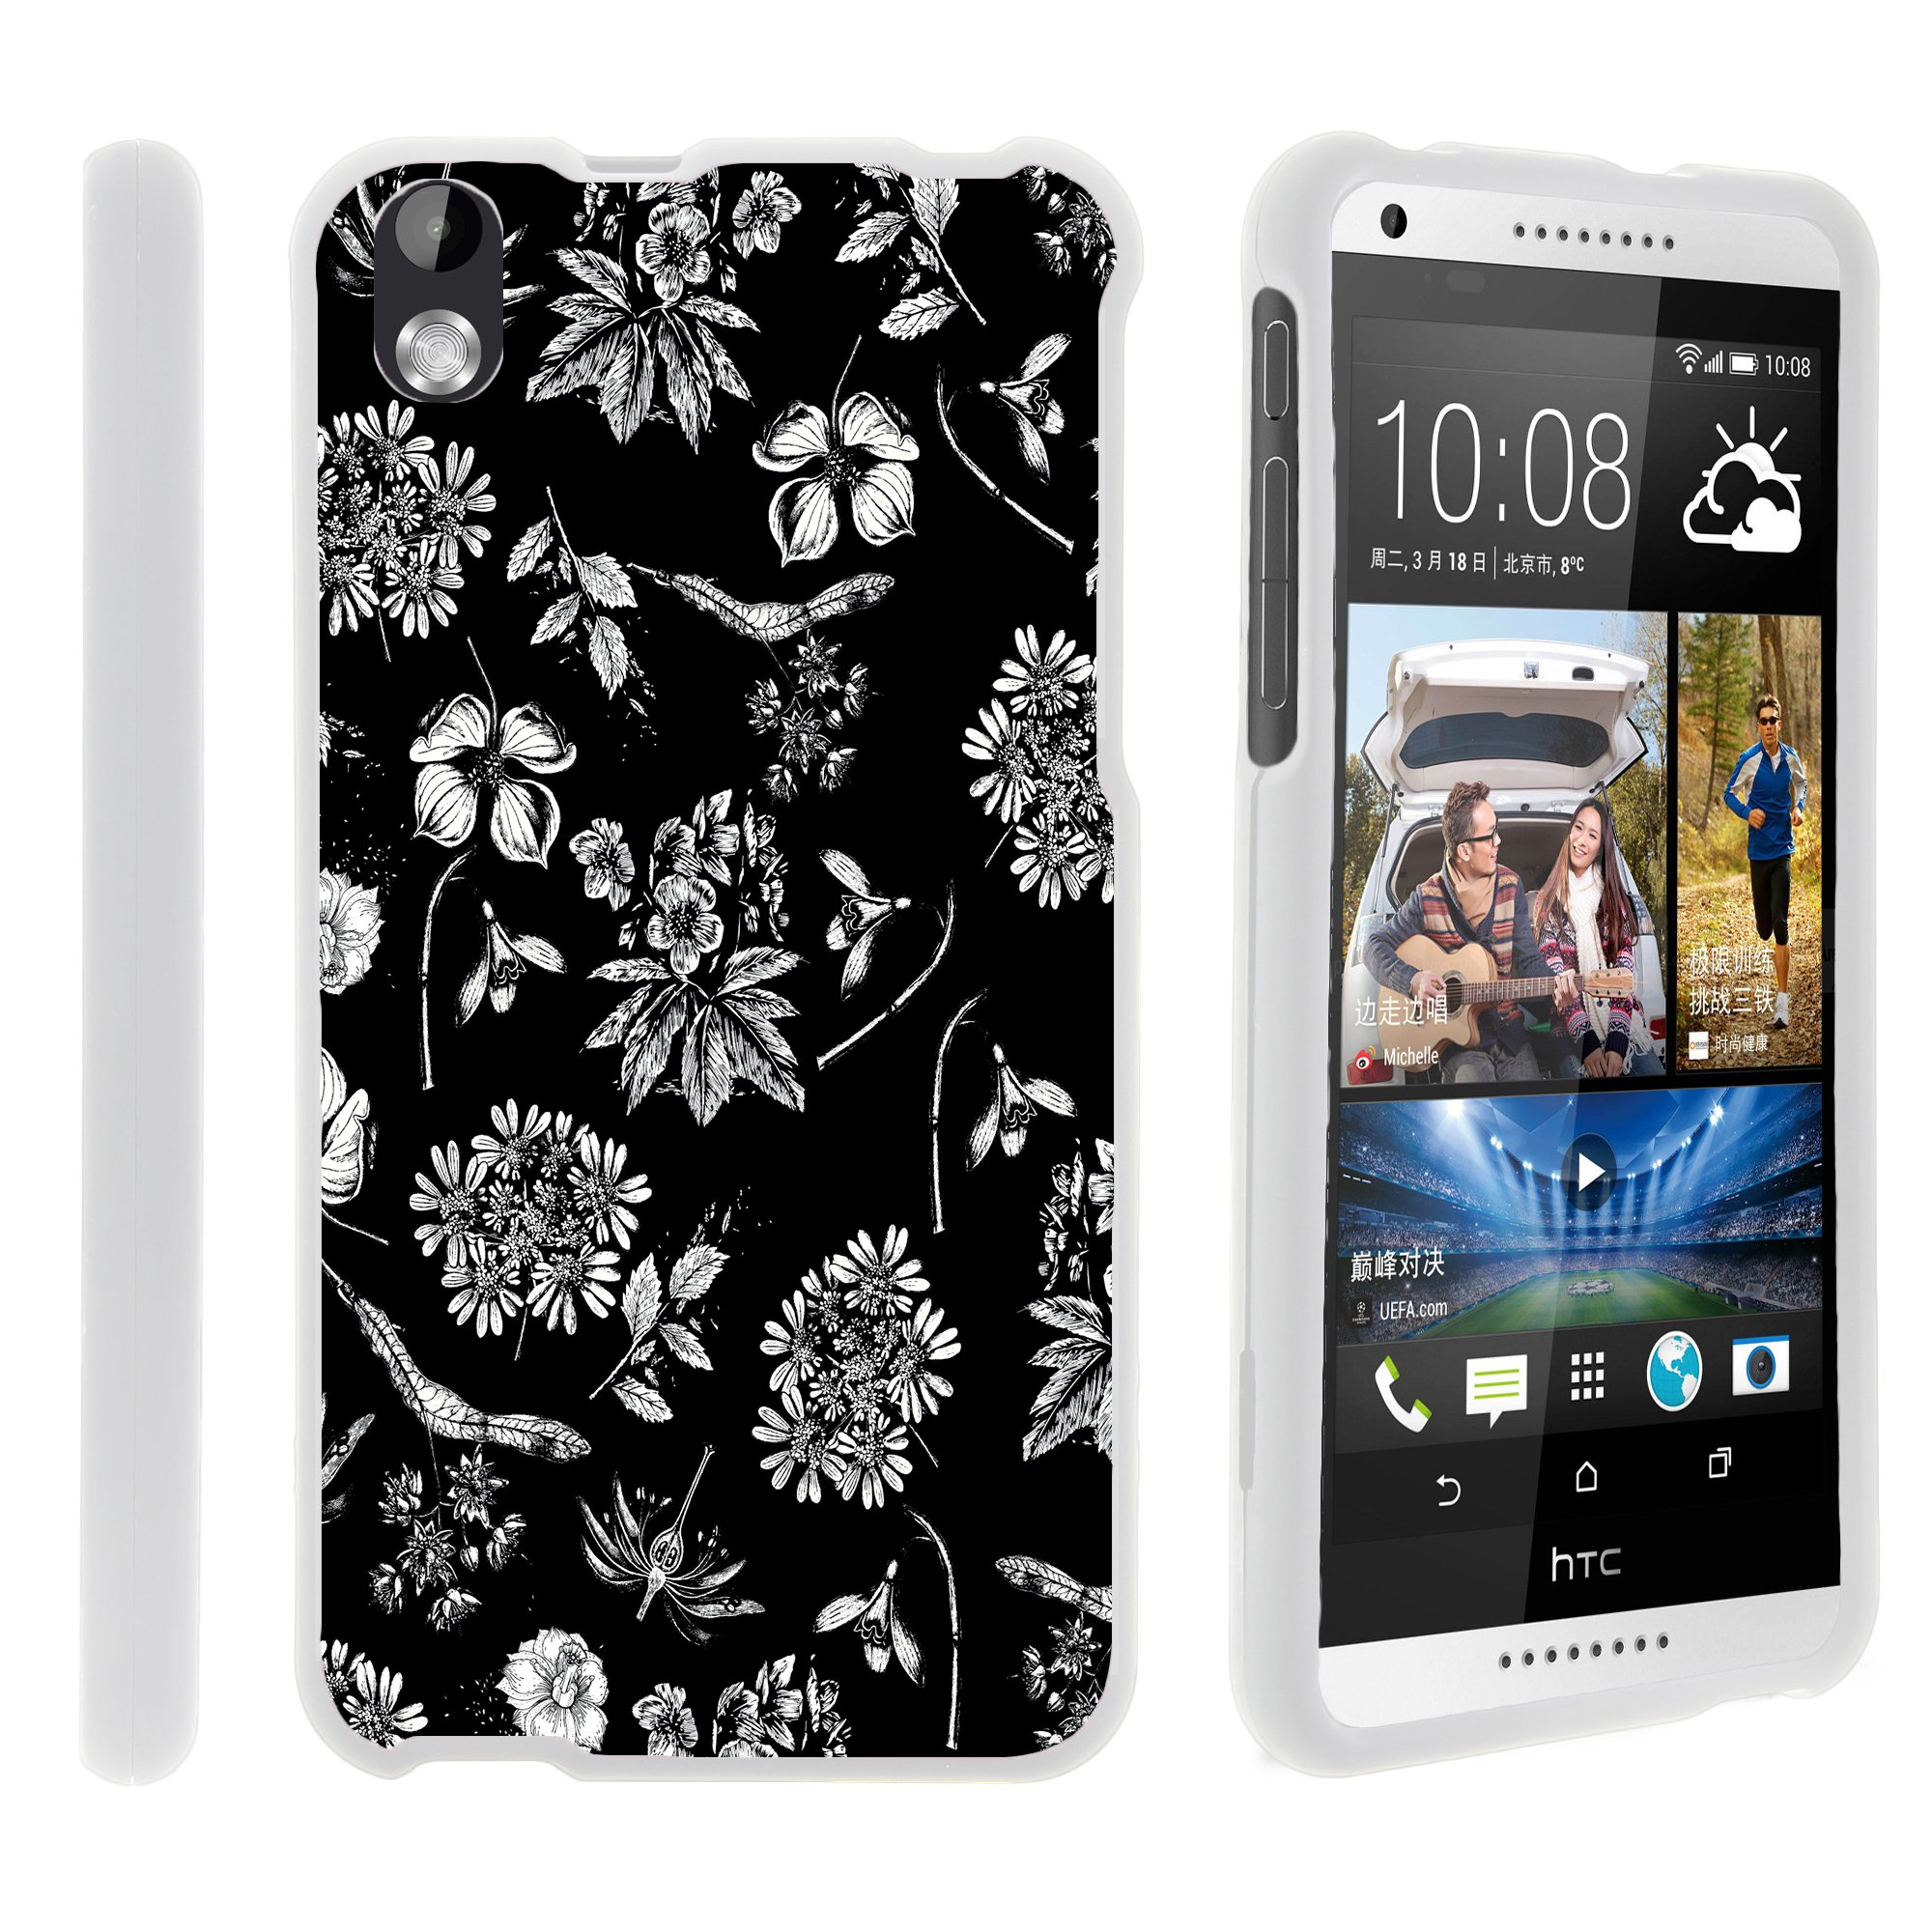 HTC Desire 816, [SNAP SHELL][White] 2 Piece Snap On Rubberized Hard White Plastic Cell Phone Case with Exclusive Art - Black White Flowers